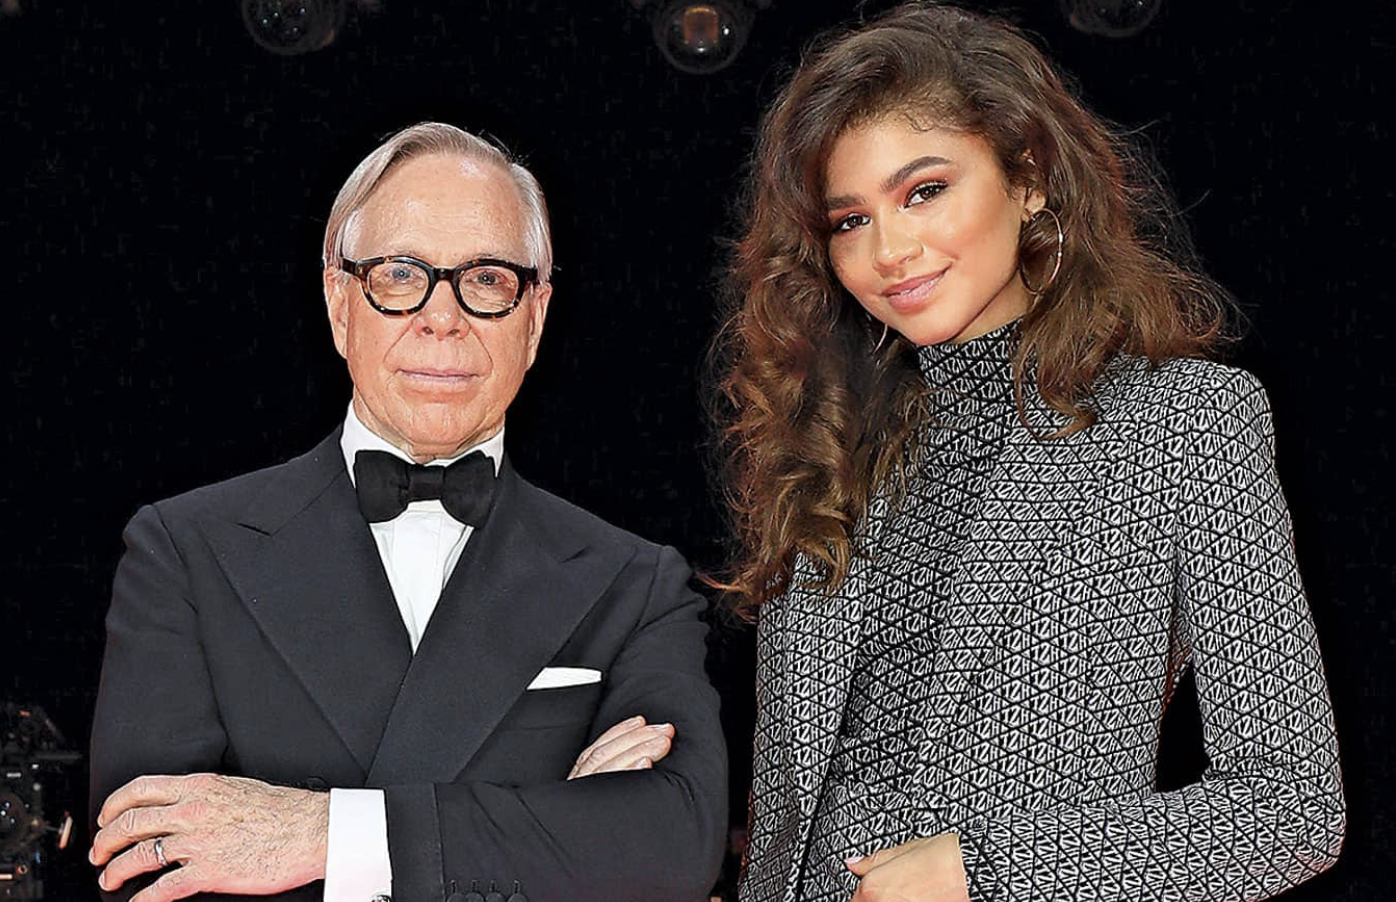 ZENDAYA IS NOW FASHION'S MOST IN DEMAND TRIPLE THREAT -